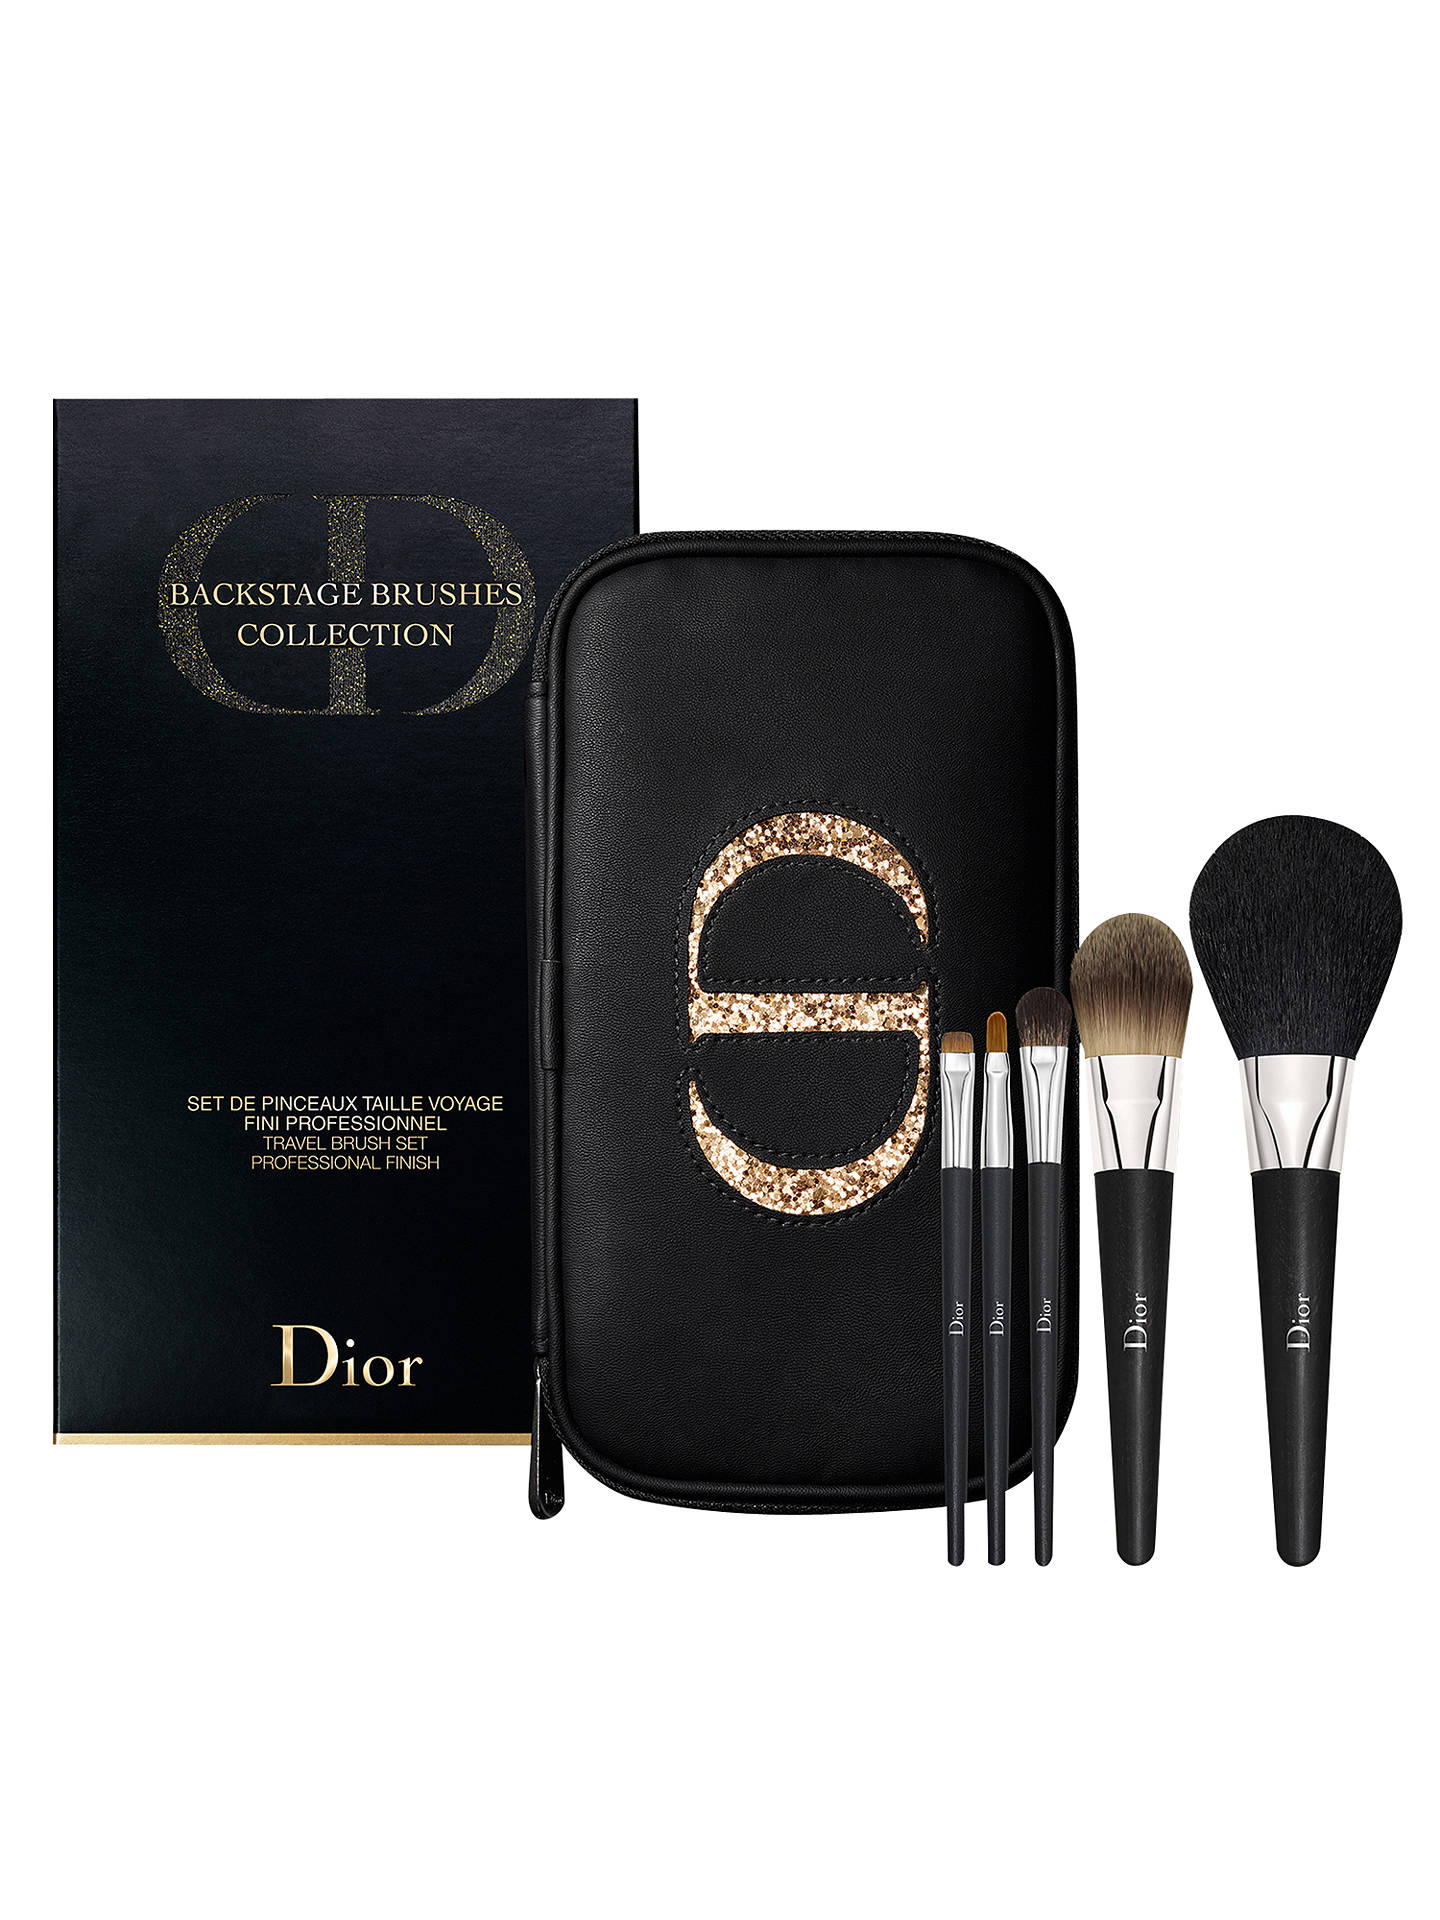 96ed6a06 Dior Backstage Brushes Collection Travel Brush Set at John Lewis ...